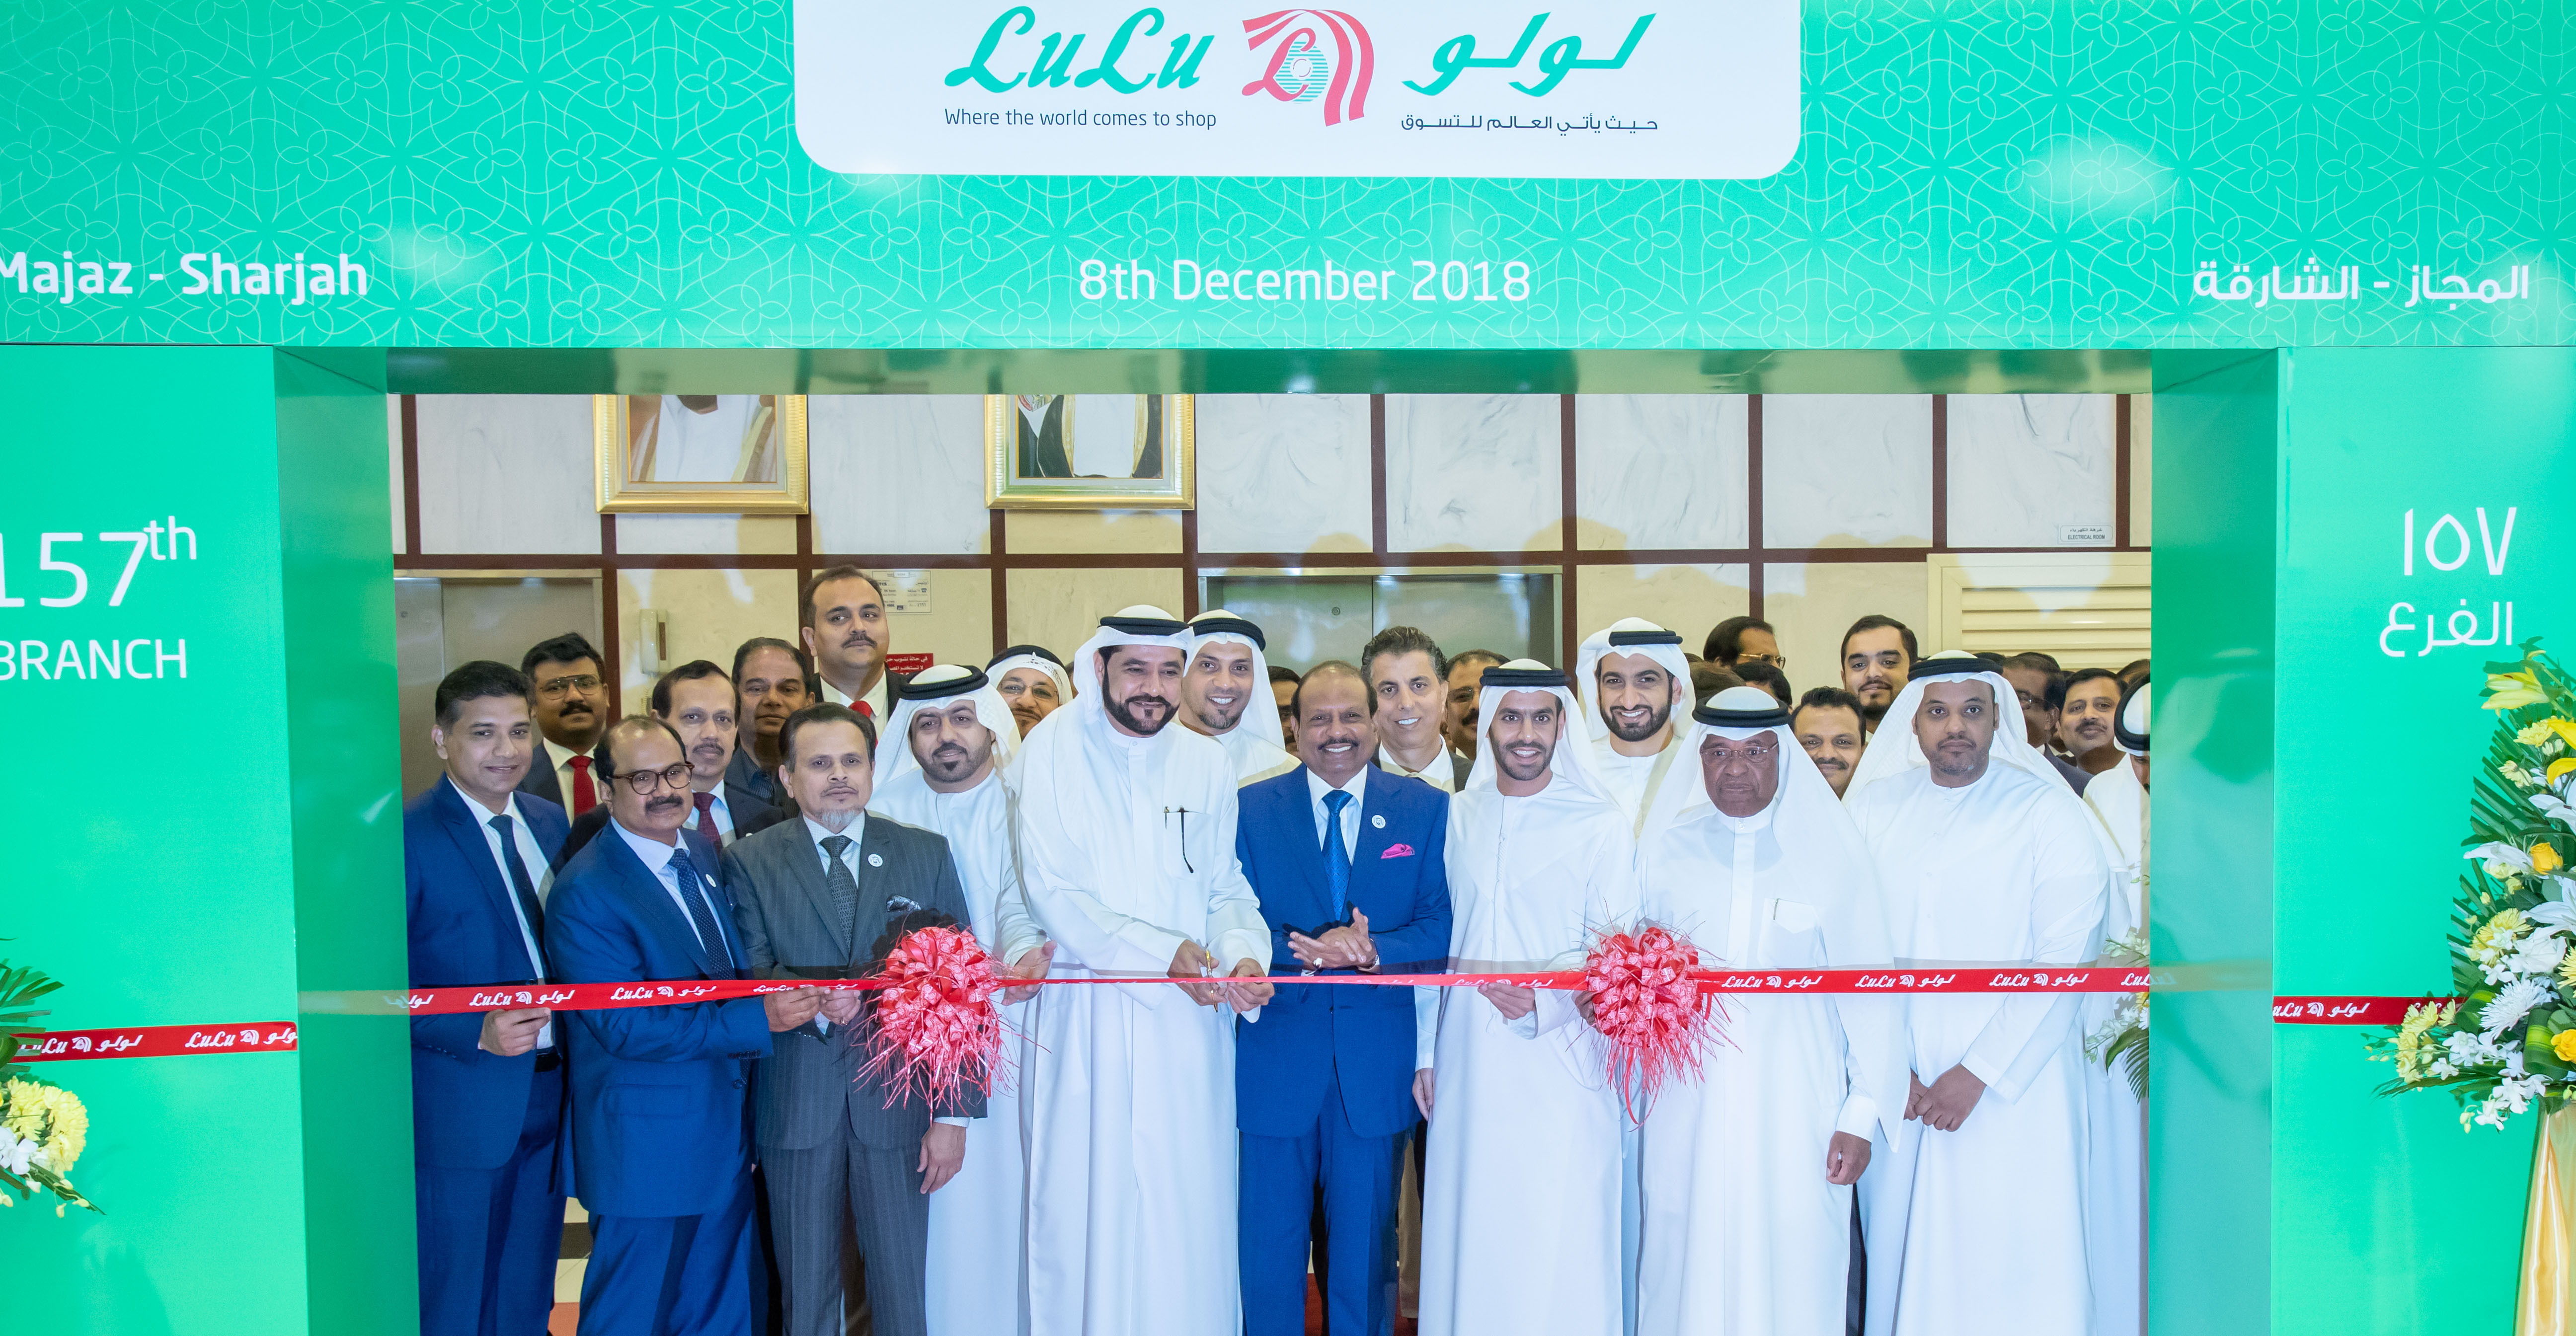 LuLu Group has further positioned its presence in the northern emirates with the opening its latest Hypermarket in Sharjah.